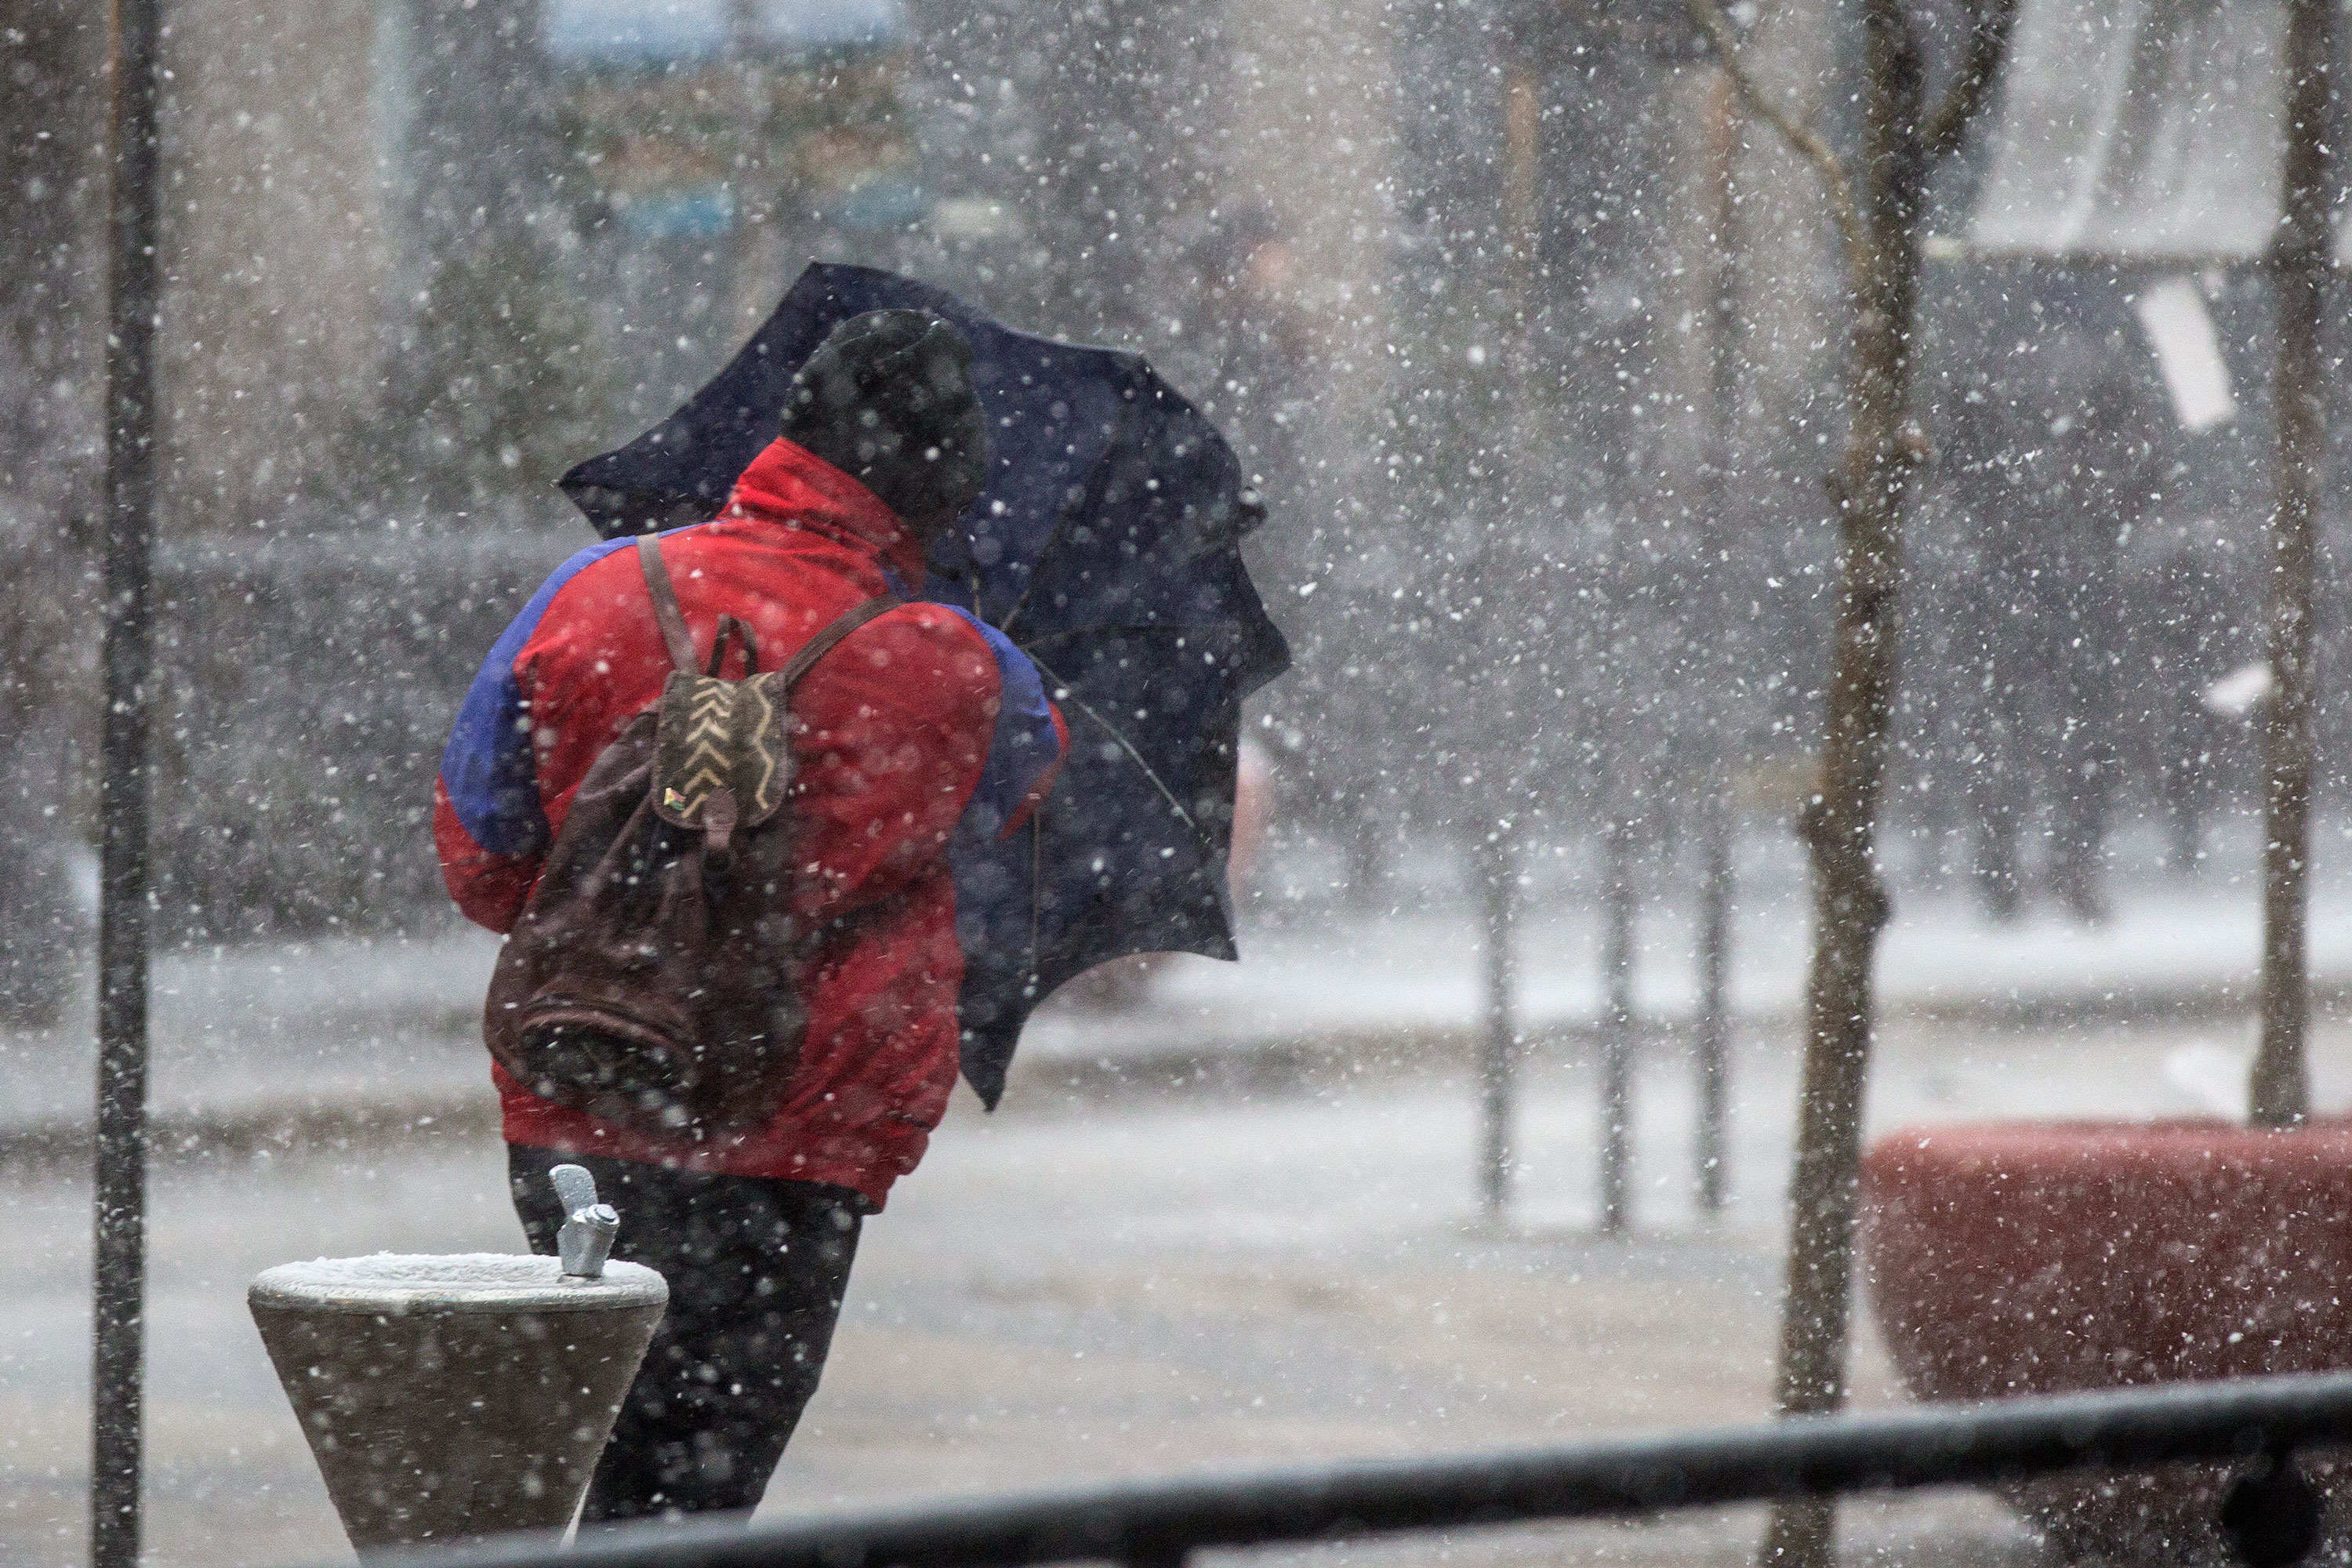 Photo: Bomb Cyclone 6 | Downtown Denver, Umbrella Shield 2 - HVD